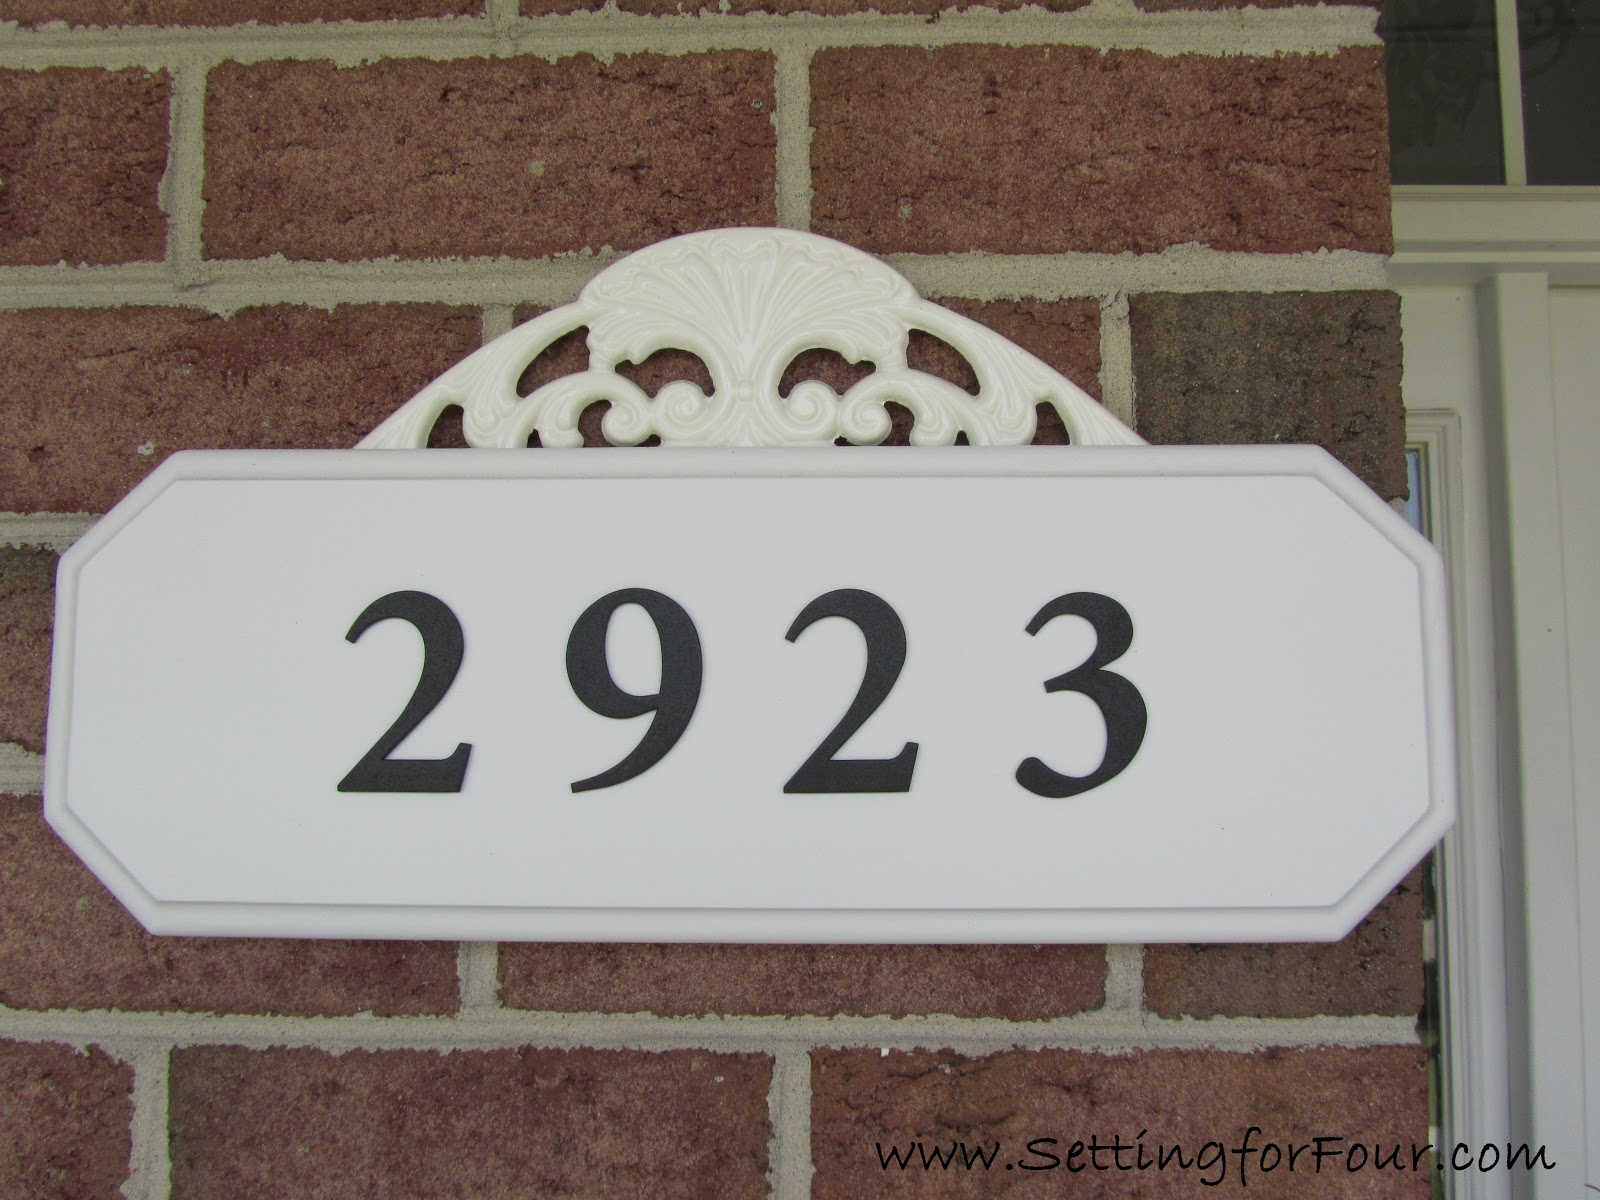 Easy diy address plaque makeover setting for four easy diy address plaque makeover dailygadgetfo Gallery